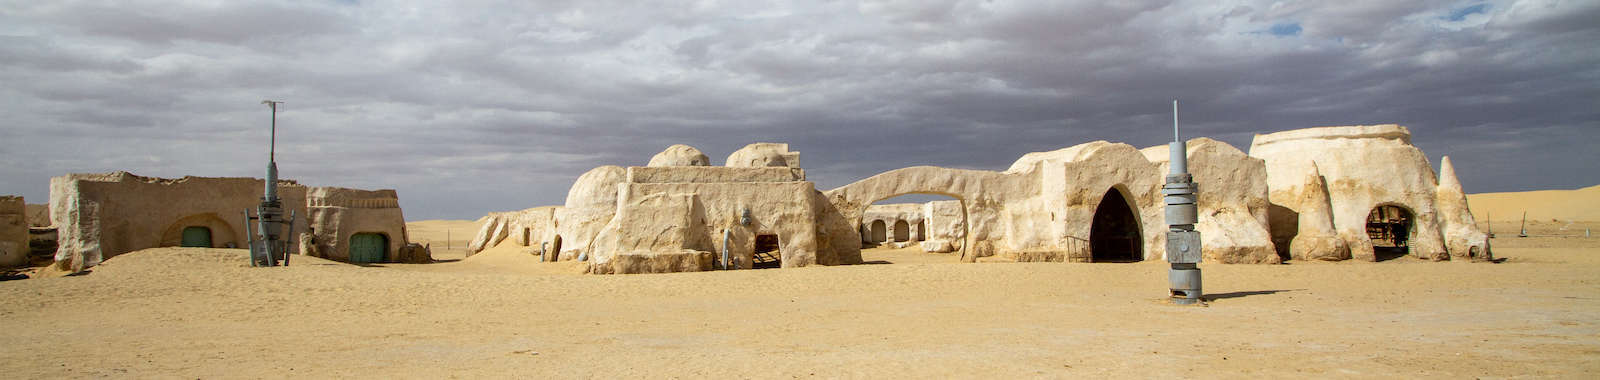 Visit Star Wars film sets on a private Star Wars tour of Tunisia